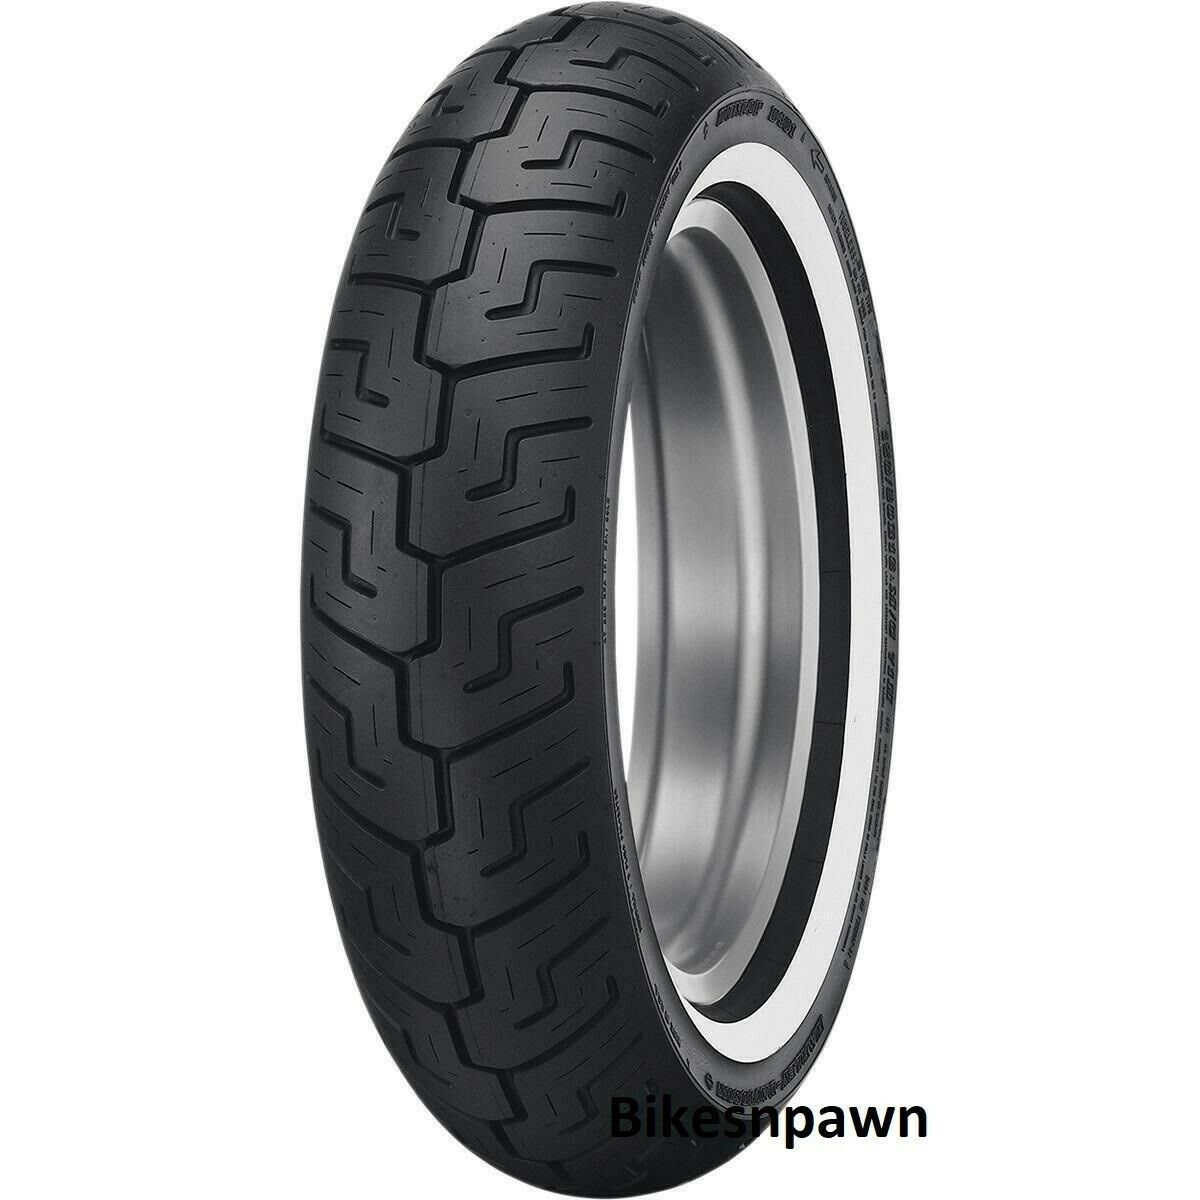 New Dunlop D401 150/80B16 Harley Davidson Rear Medium Whitewall MWW Tire 71H TL